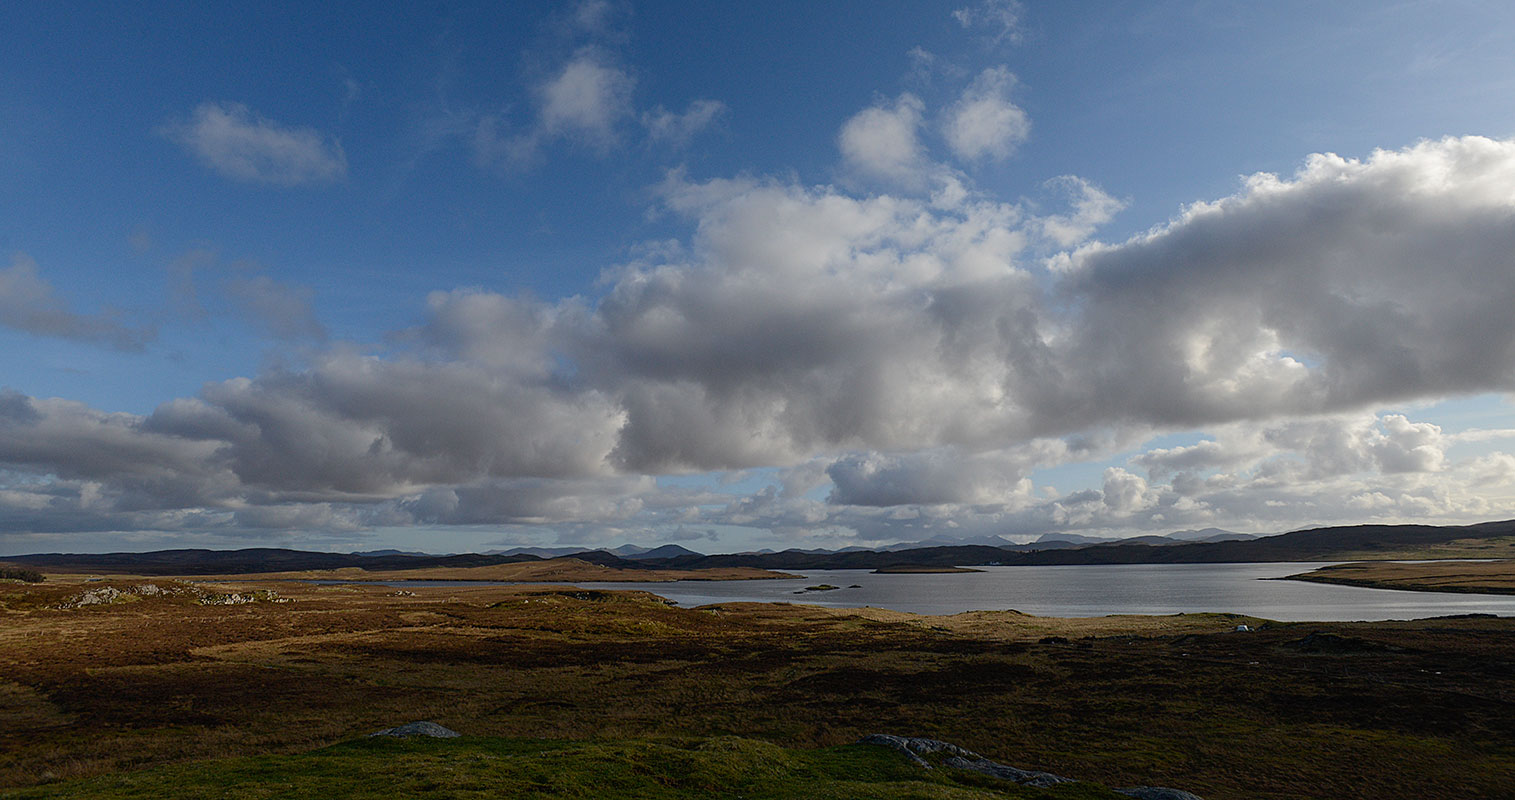 A few south from the standing stones at Calanais 3 or Cnoc Fhillibhir Bheag, Isle of LewisScotlandNikon D600, 17-35mm